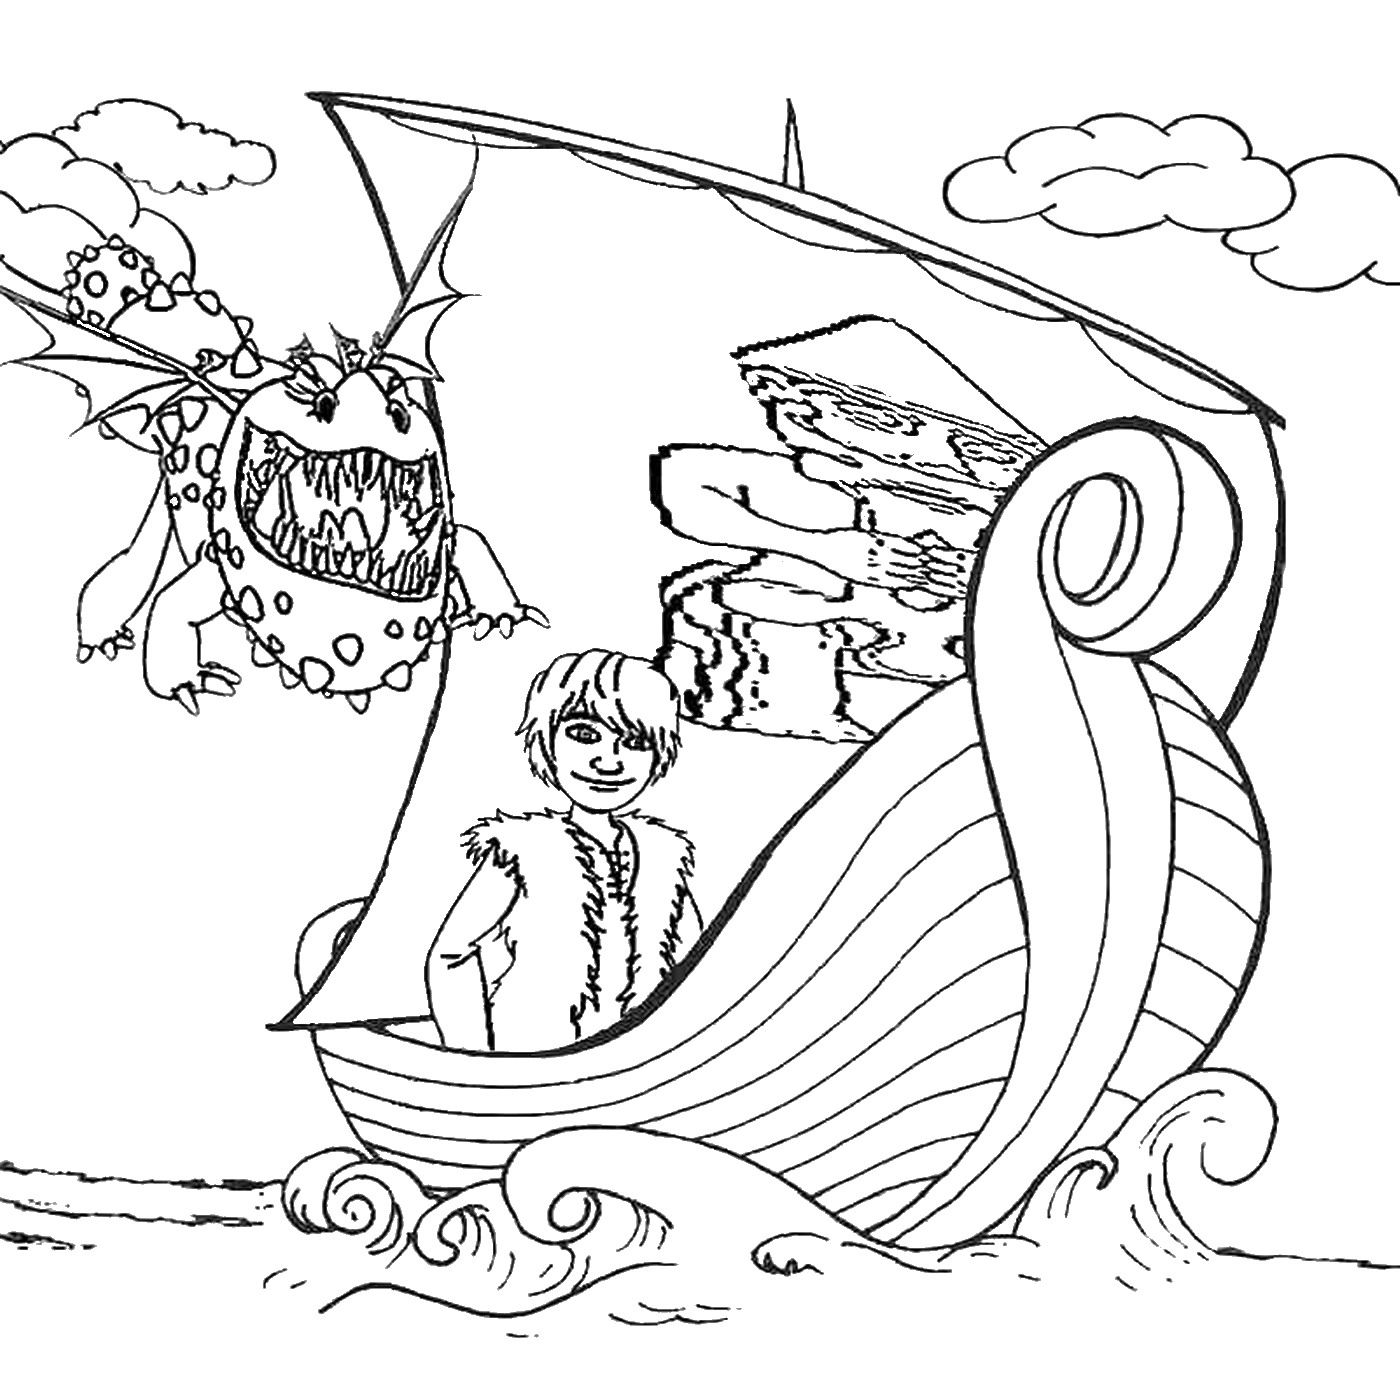 Colouring pages how to train your dragon - How To Train Your Dragon Printable Coloring Pages